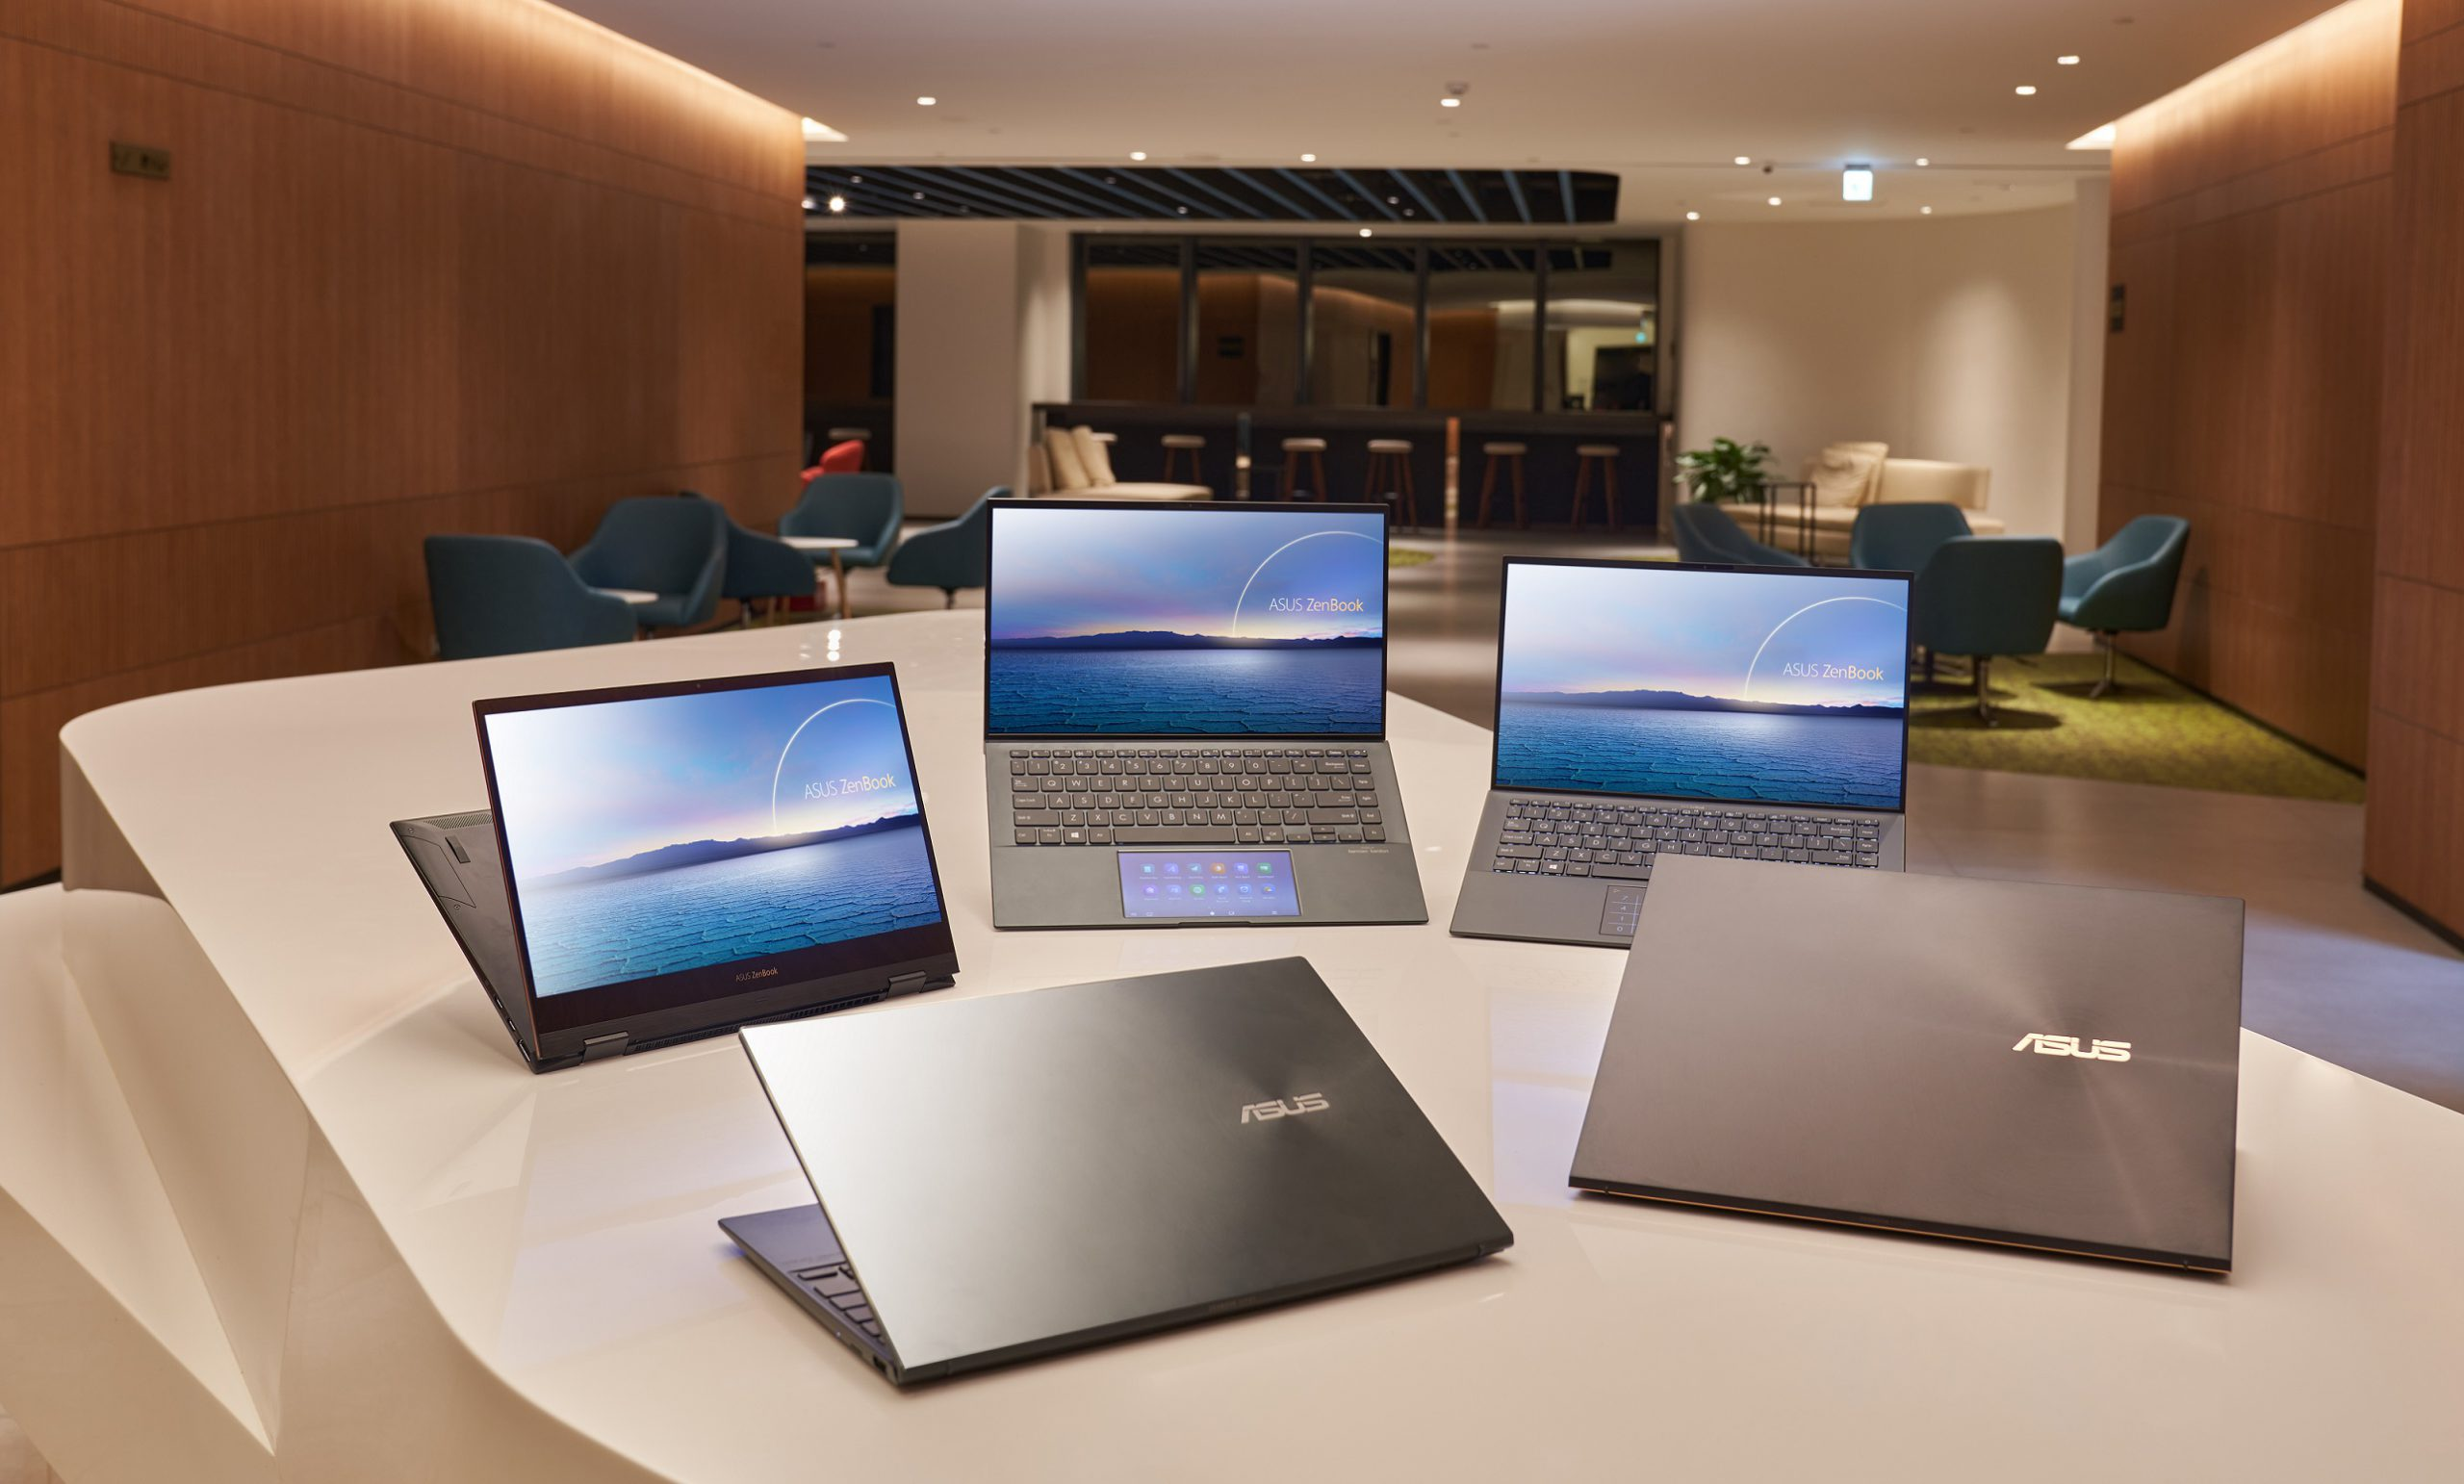 Asus laptops equipped with 11th Generation Intel Core processors scaled